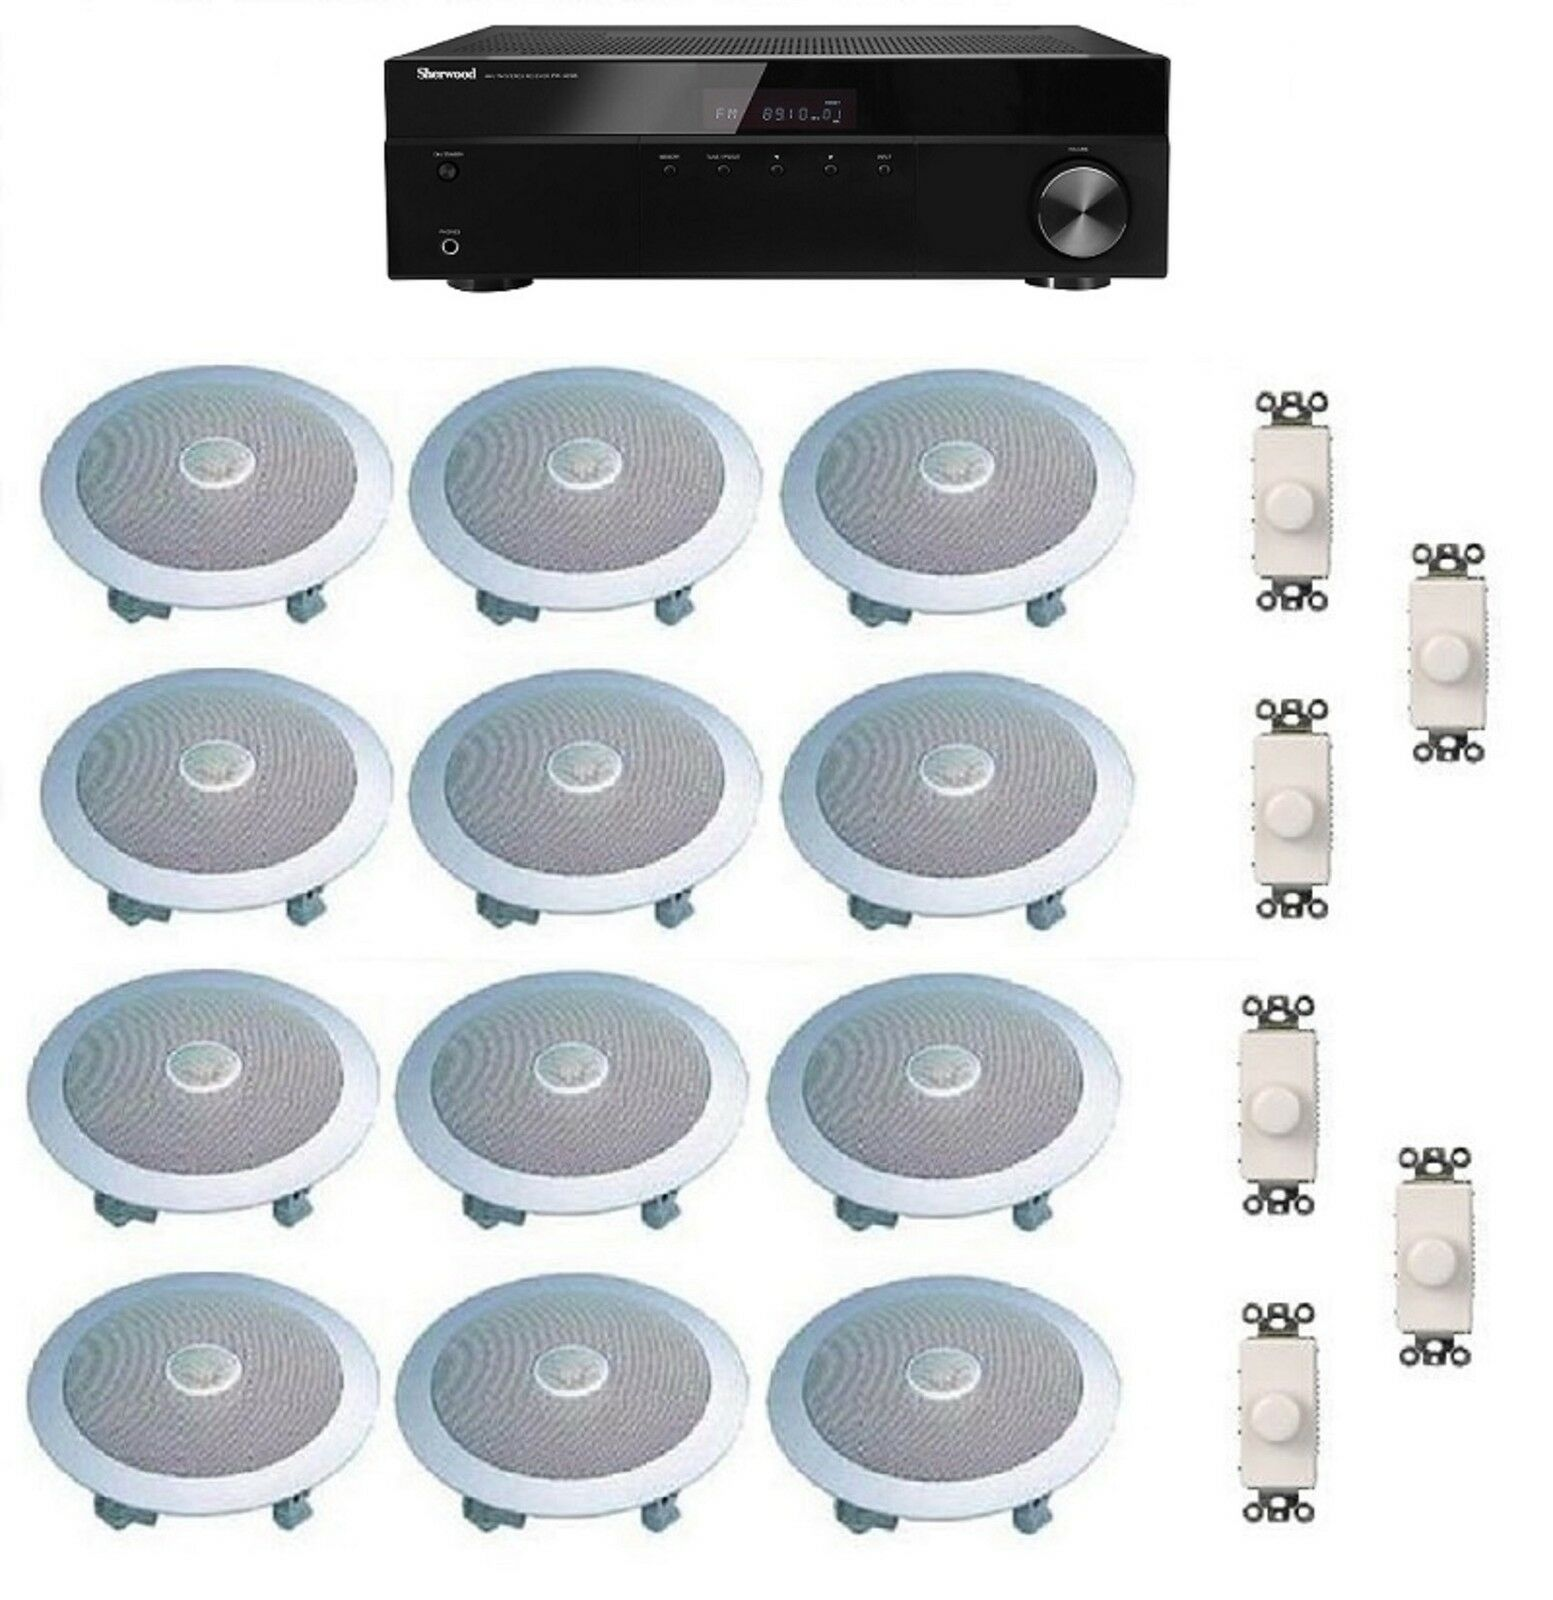 HOME AUDIO SOUND SYSTEM- FLUSH IN-CEILING SPEAKERS & VOL CON